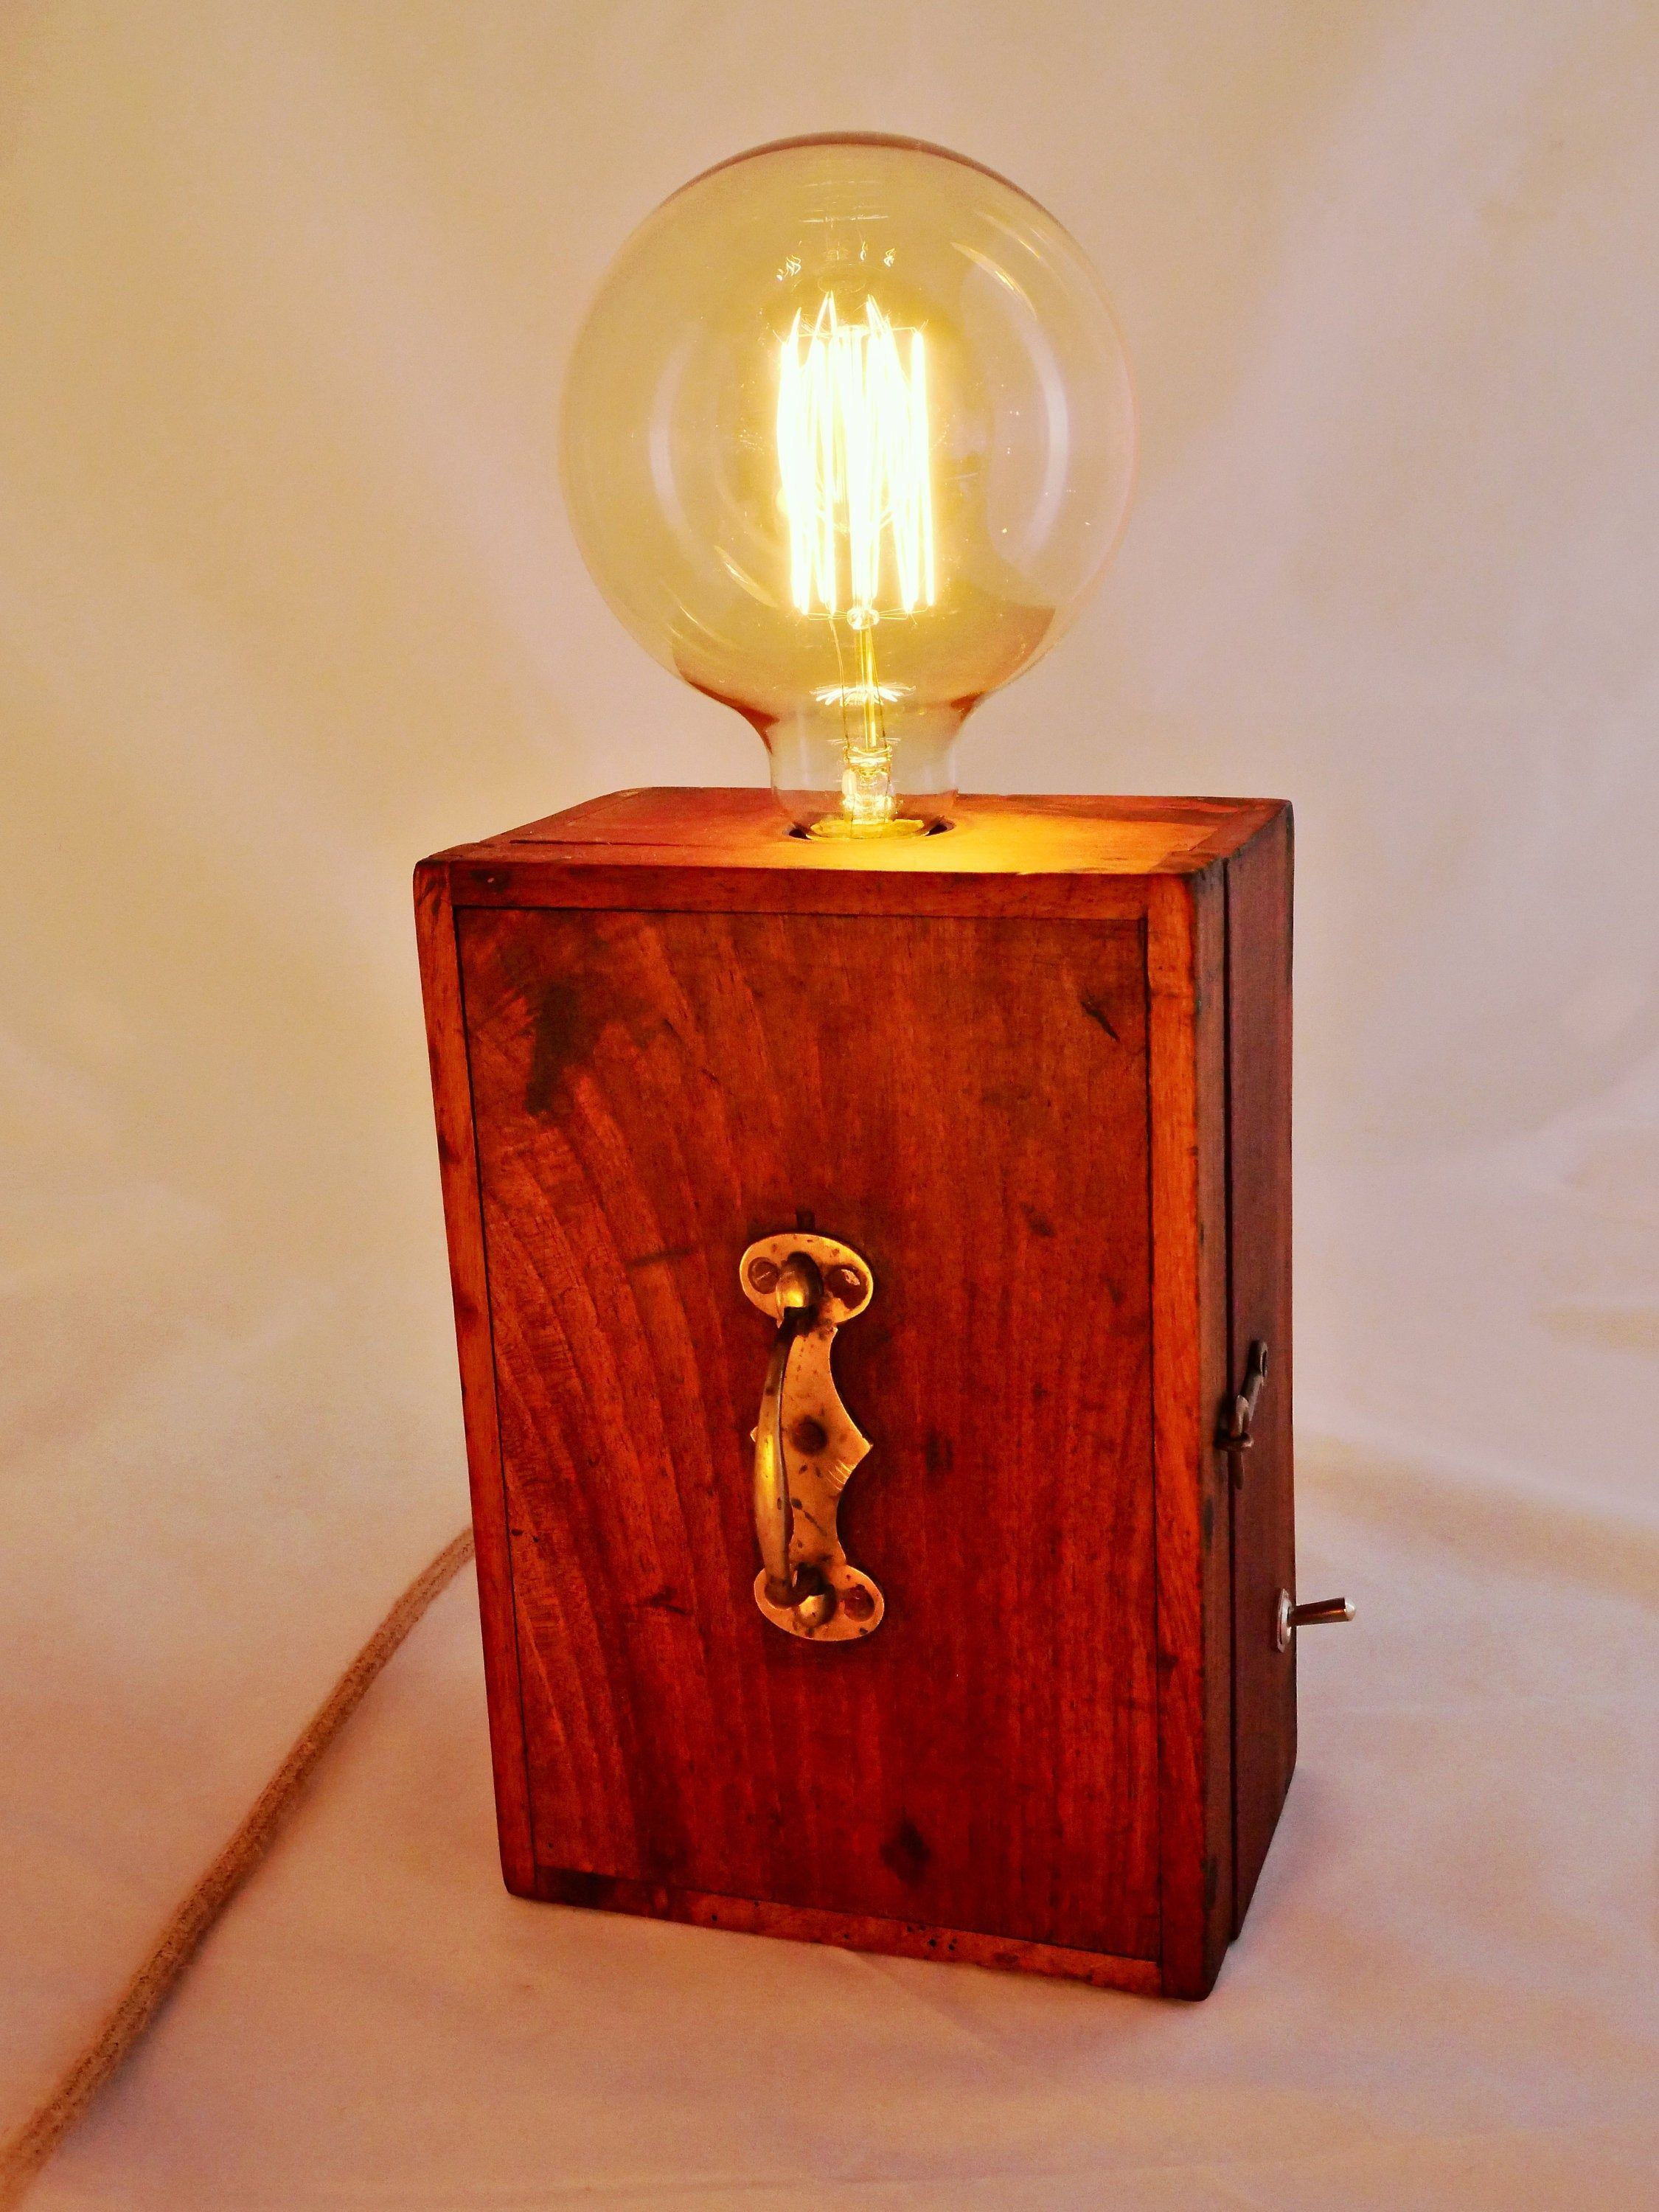 Vintage Box Wooden Lamp In 2020 Wooden Lamp Vintage Boxes Wooden Lamp